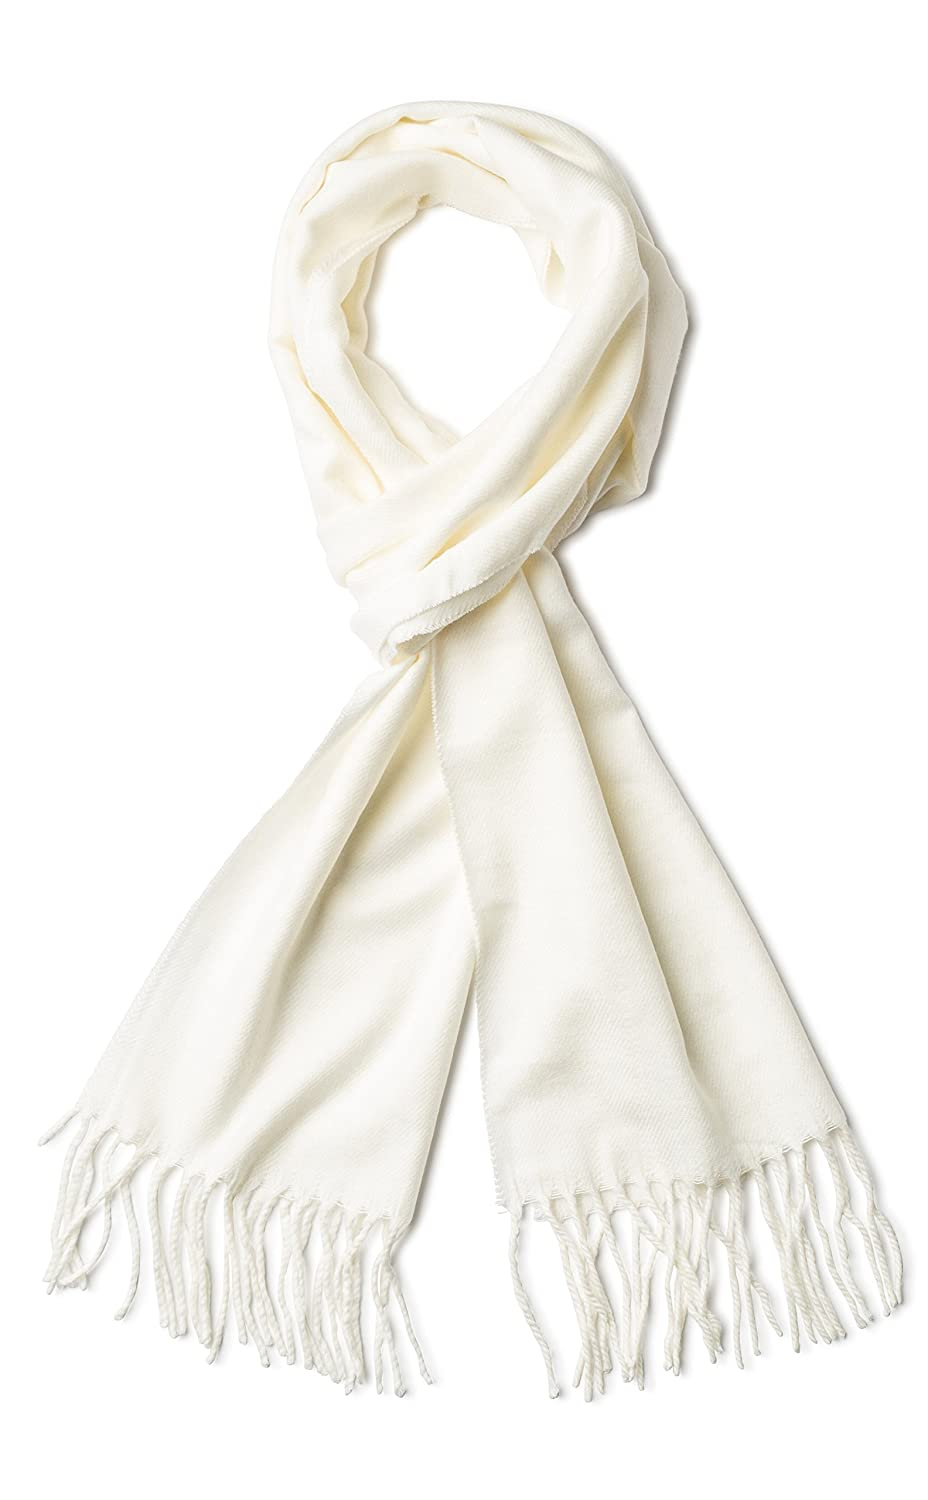 Edwardian Men's Accessories Veronz Super Soft Luxurious Classic Cashmere Feel Winter Scarf With Gift Box $17.98 AT vintagedancer.com